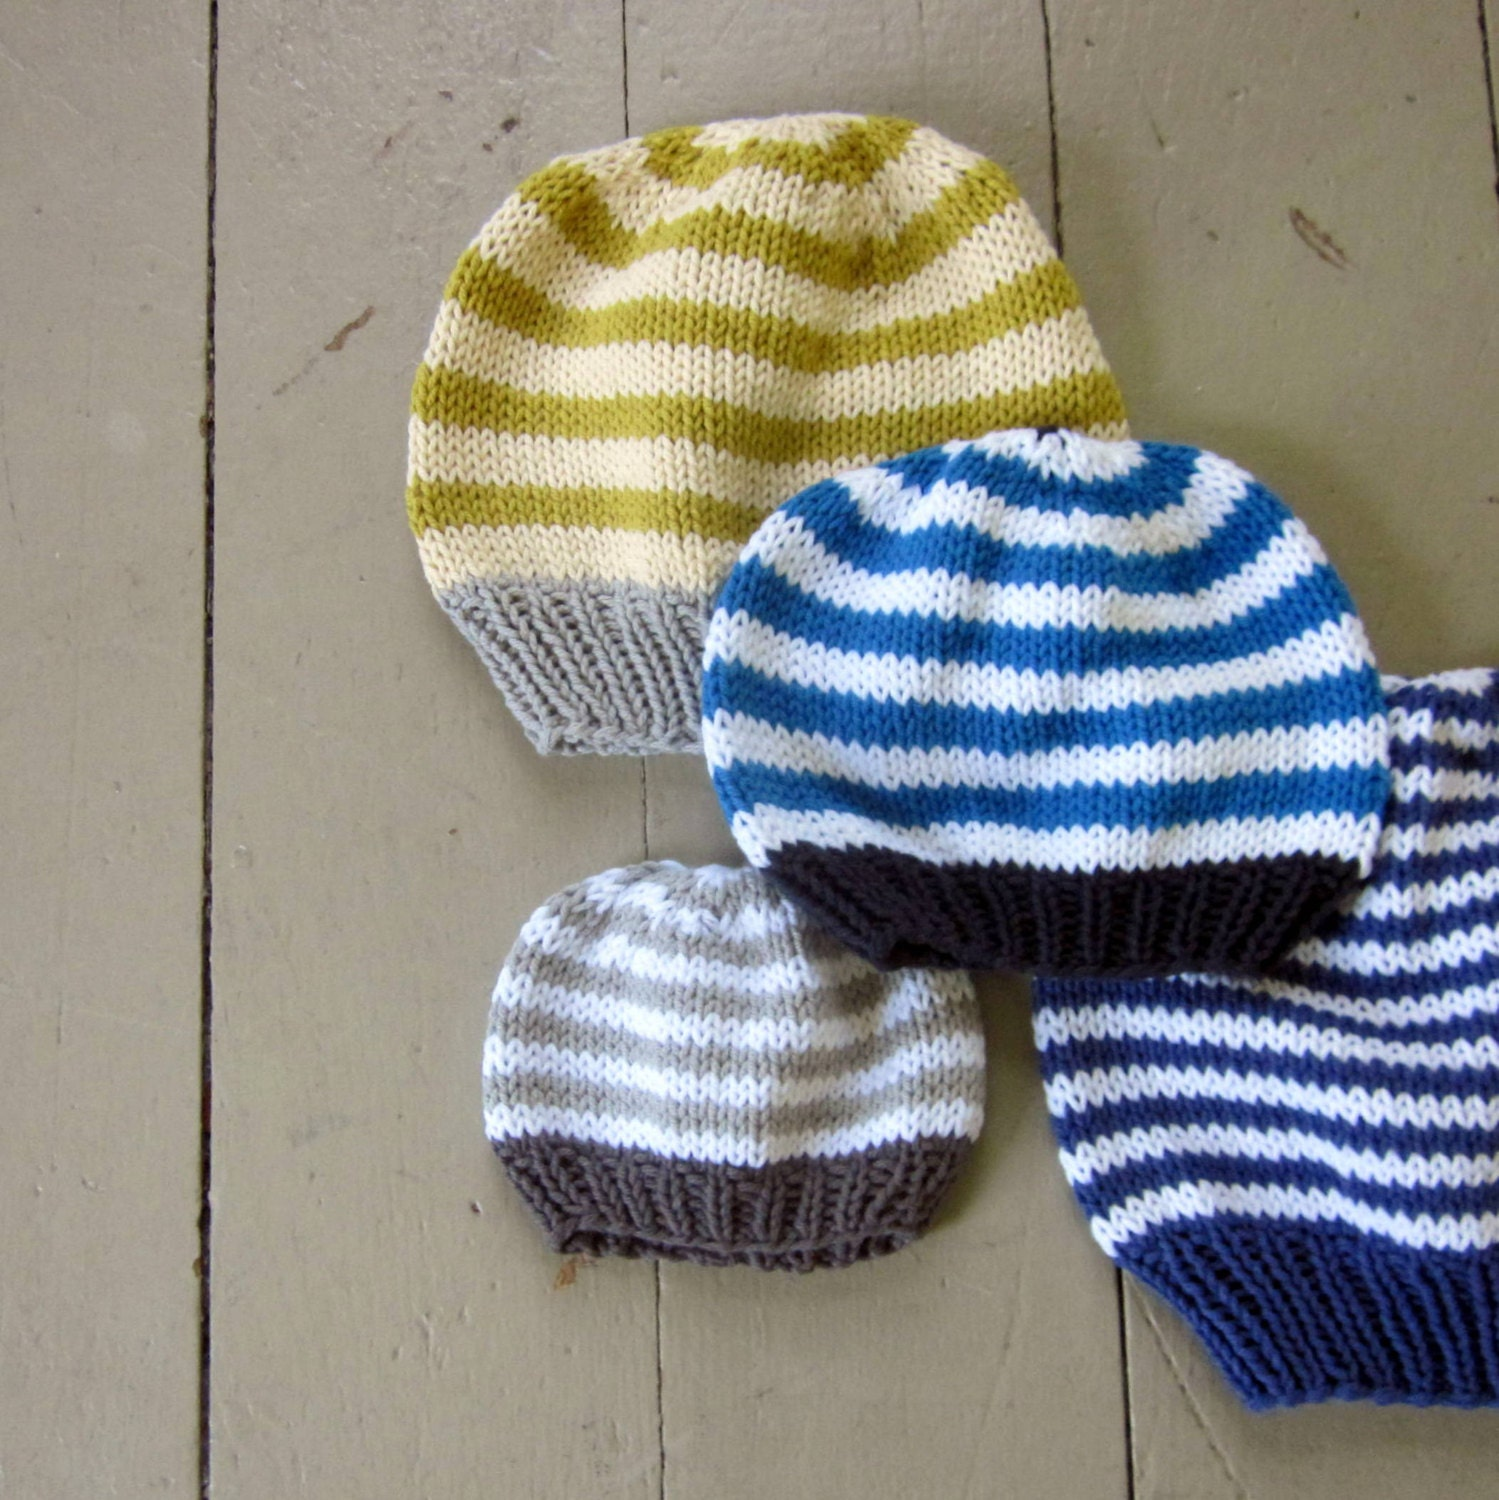 Knitting Patterns For Baby Boy Hats : Pattern, basic hat knitting pattern, PDF knitted hat pattern: newborn, baby, ...